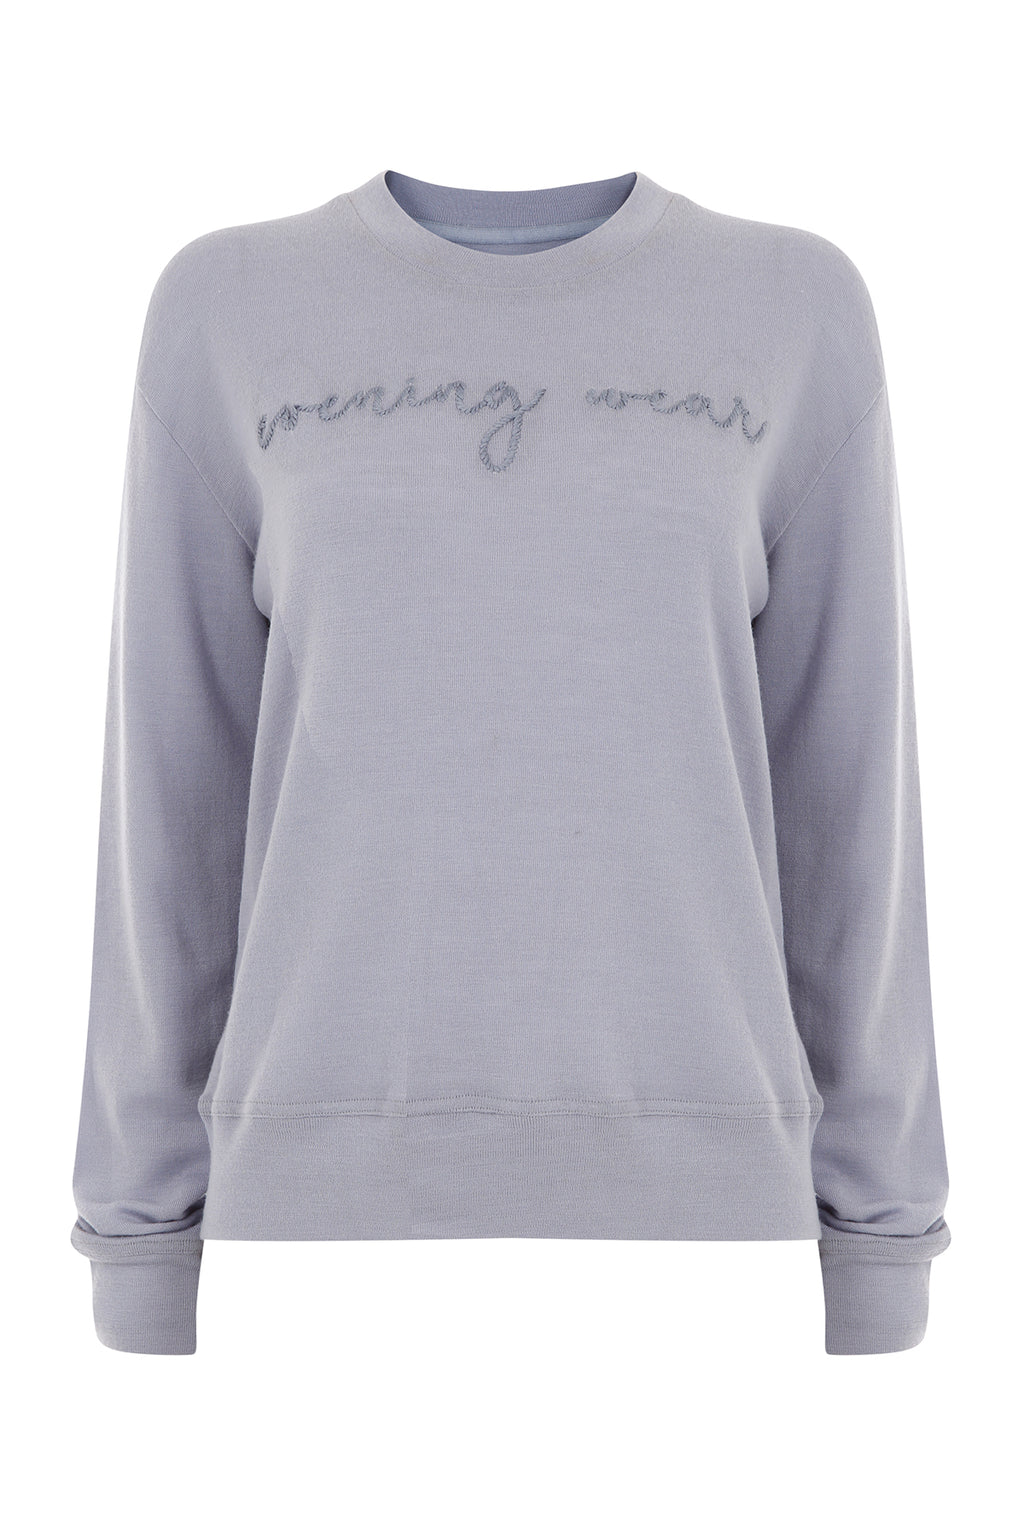 Luxe + Hardy | Luxe and Hardy | sweatshirt | sweatshirt womens | loungwear for women  | Loungewear you can wear out  | embroidered sweatshirt | merino wool jumper